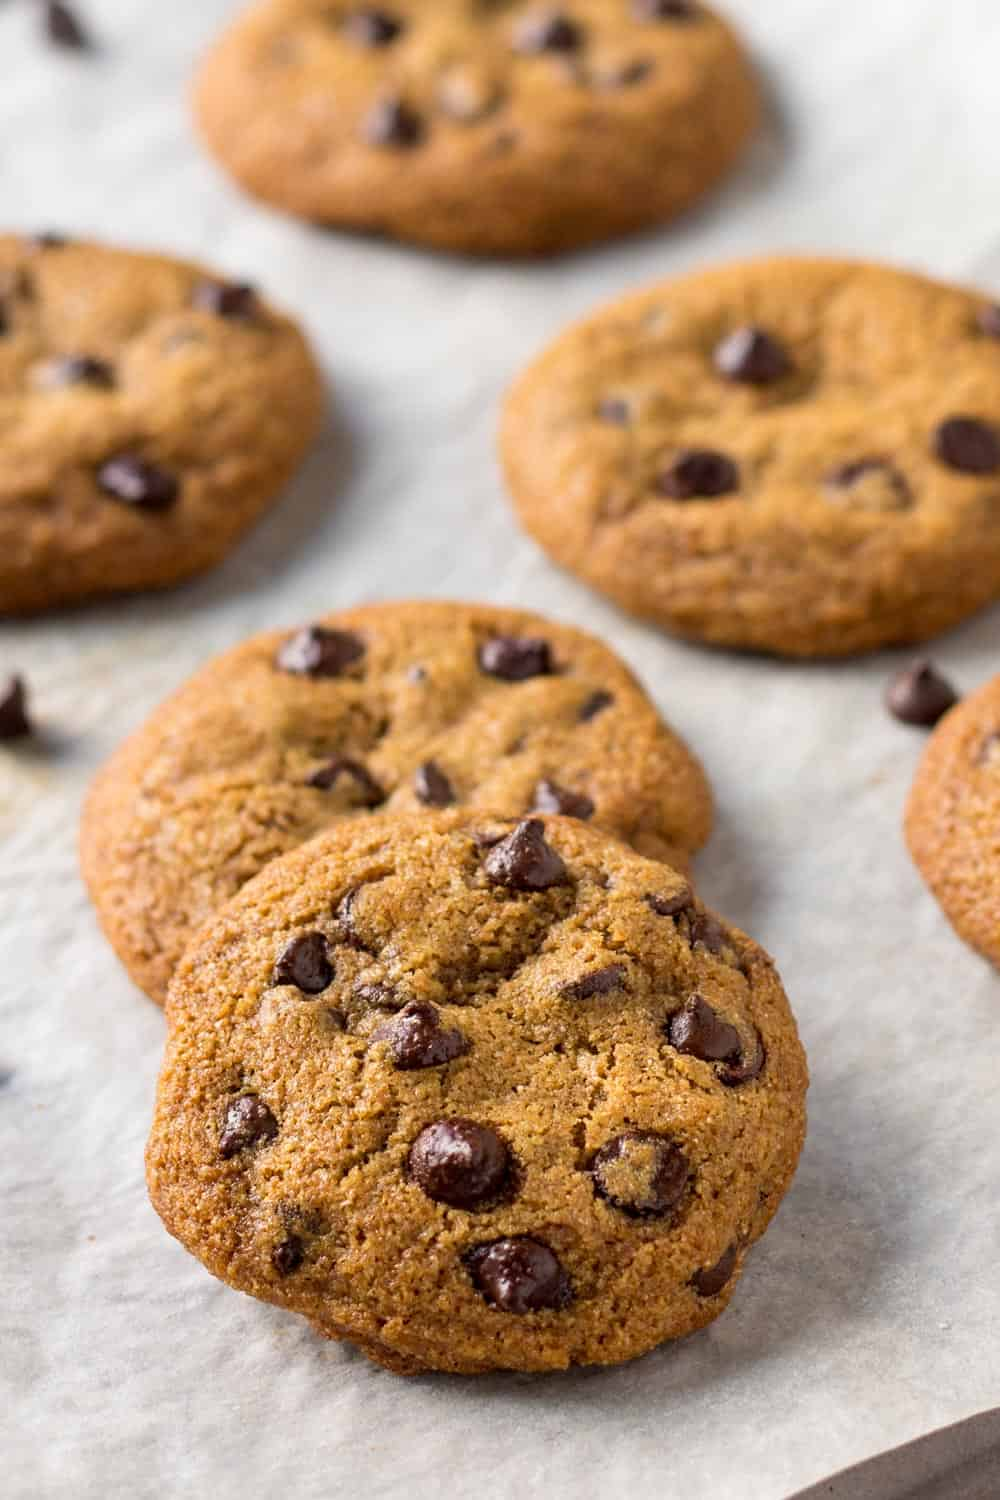 Oatmeal Chocolate Chip Cookie Recipes Without Brown Sugar